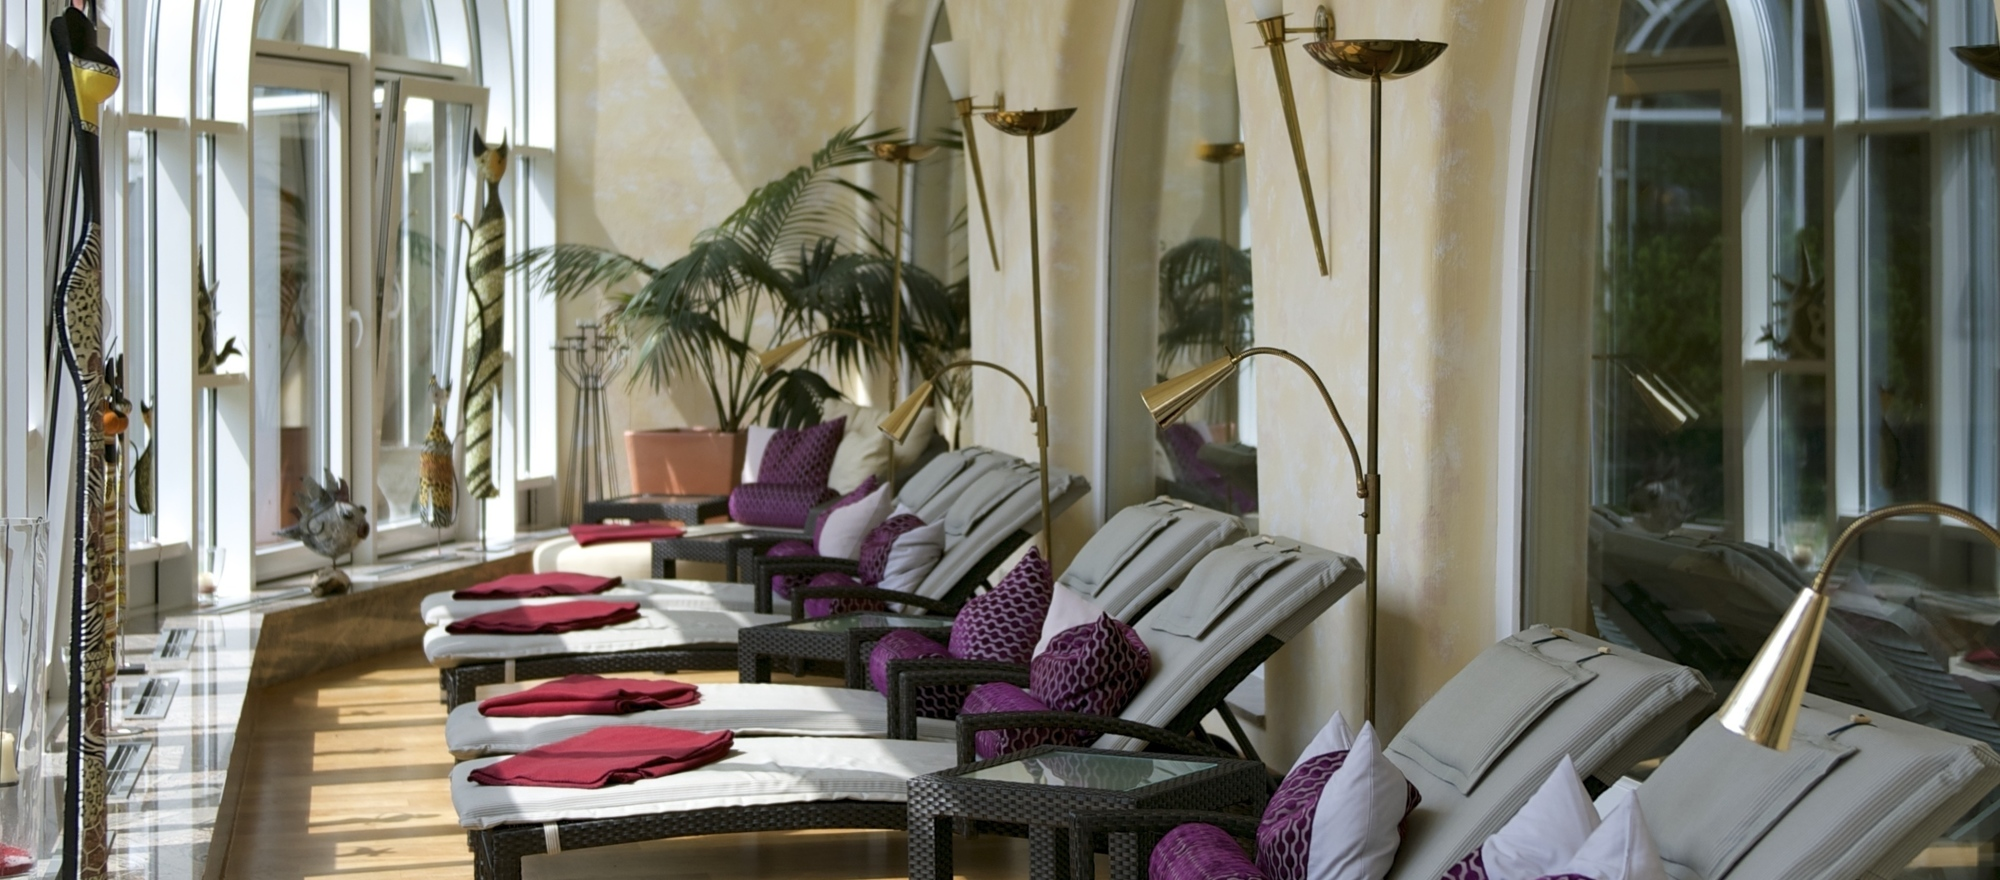 Relaxation winter garden with recumbencies at the 4-star-superior hotel Ringhotel Krone in Friedrichshafen